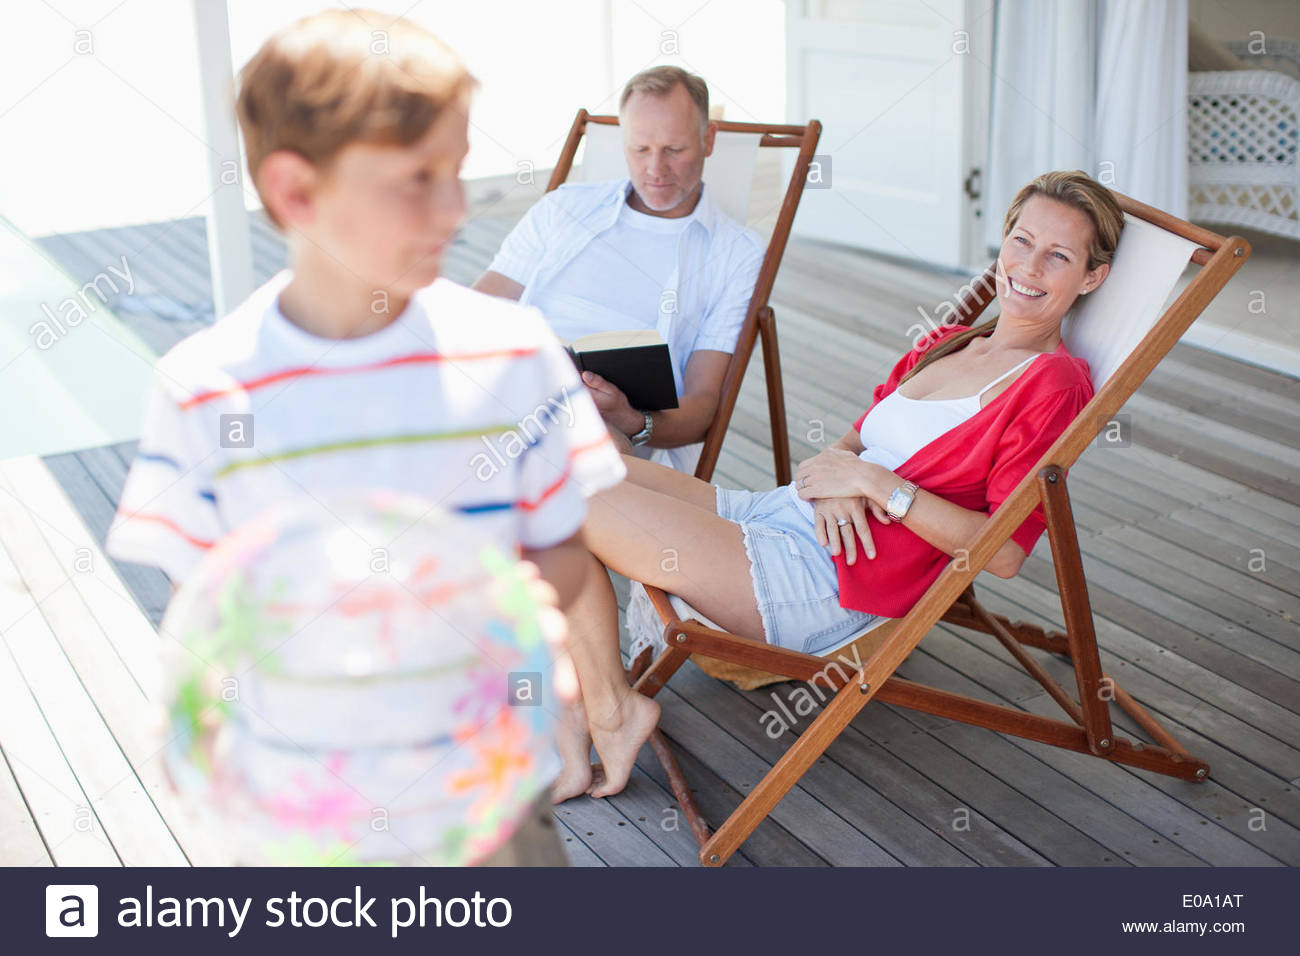 Parents watching son play with ball on deck - Stock Image